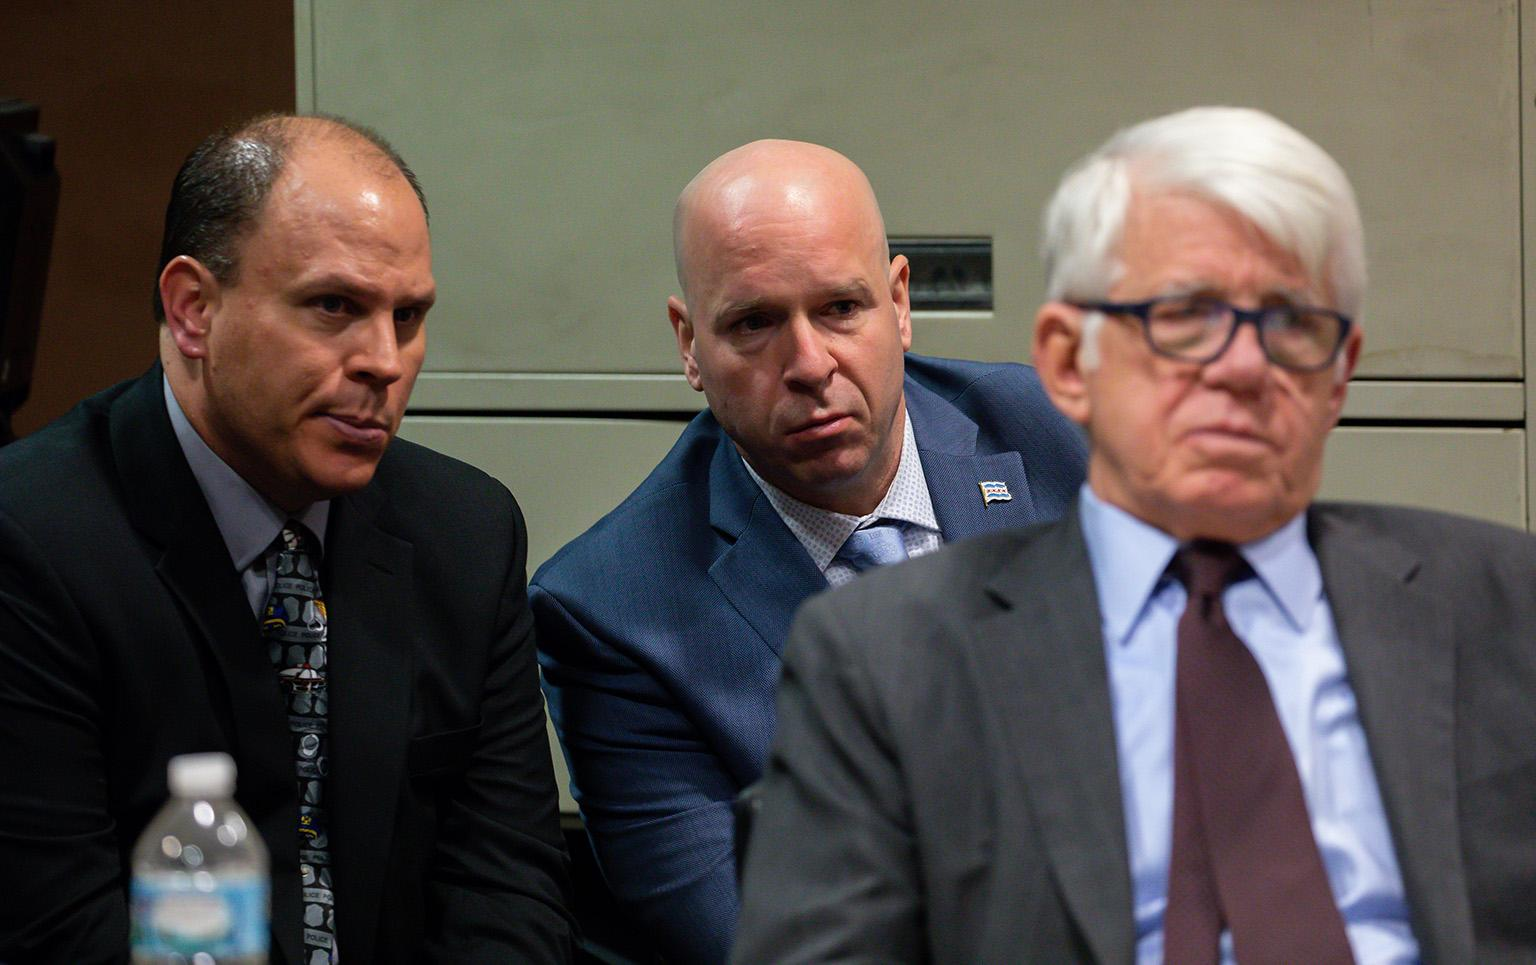 The trial of Chicago police Officer Thomas Gaffney, left, former Detective David March (not pictured) and ex-Officer Joseph Walsh, center, on Thursday, Dec. 6, 2018. (Zbigniew Bzdak / Chicago Tribune / Pool)